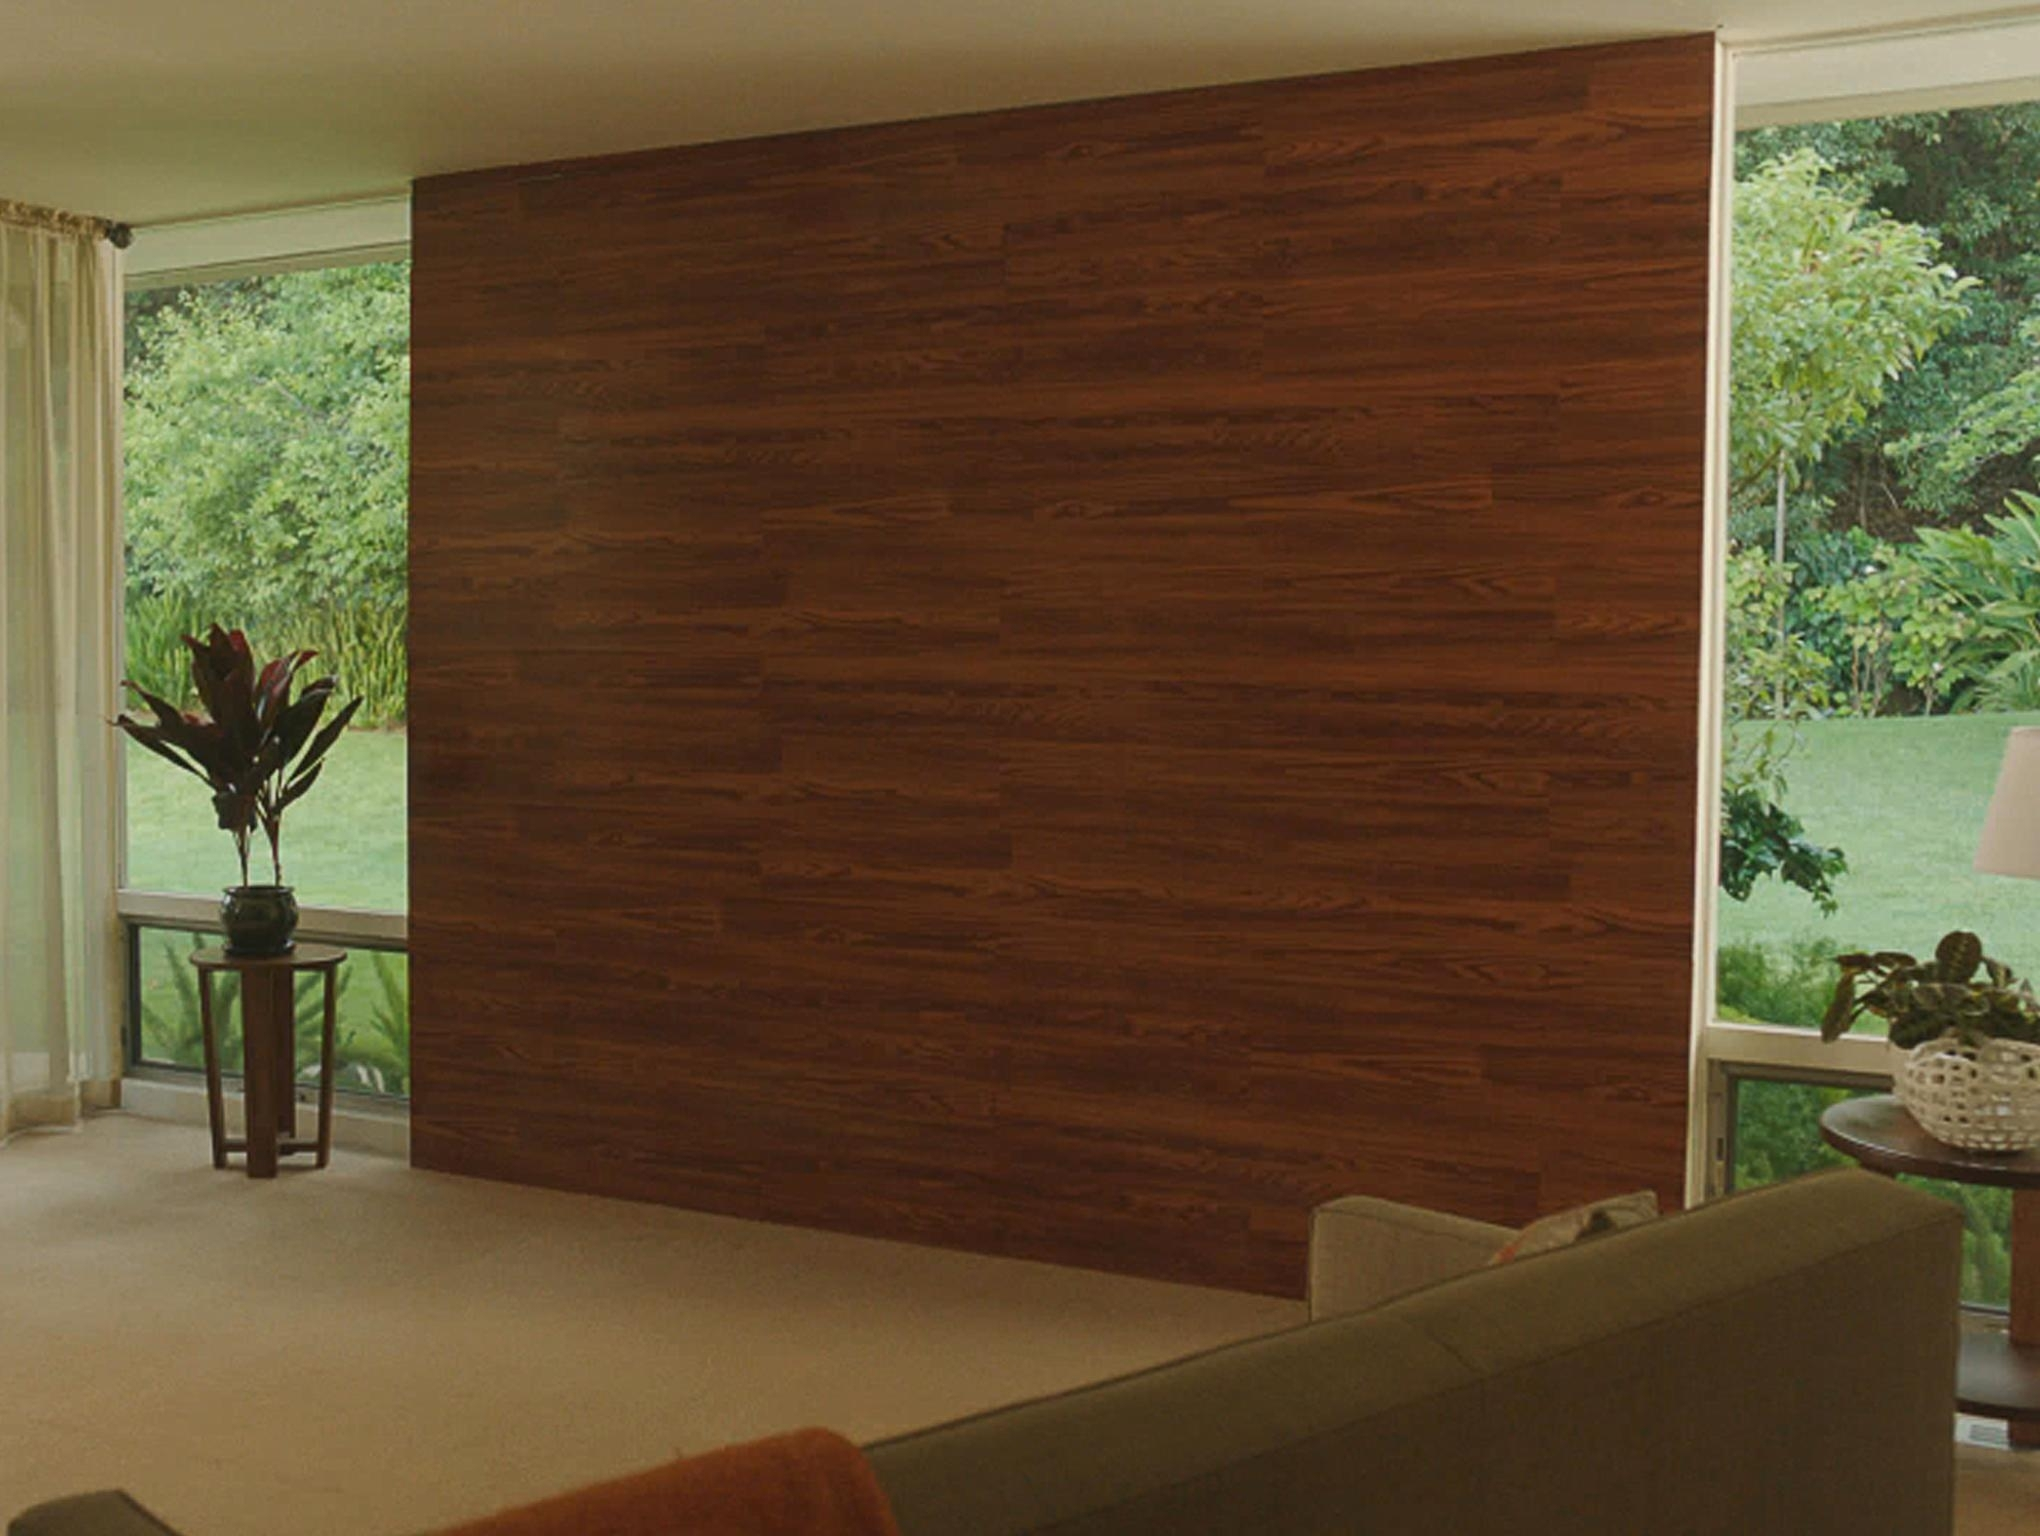 How To Build A Wall Using Laminate Flooring | The Home Depot Community Pertaining To 2017 Wall Accents With Laminate Flooring (Gallery 3 of 15)